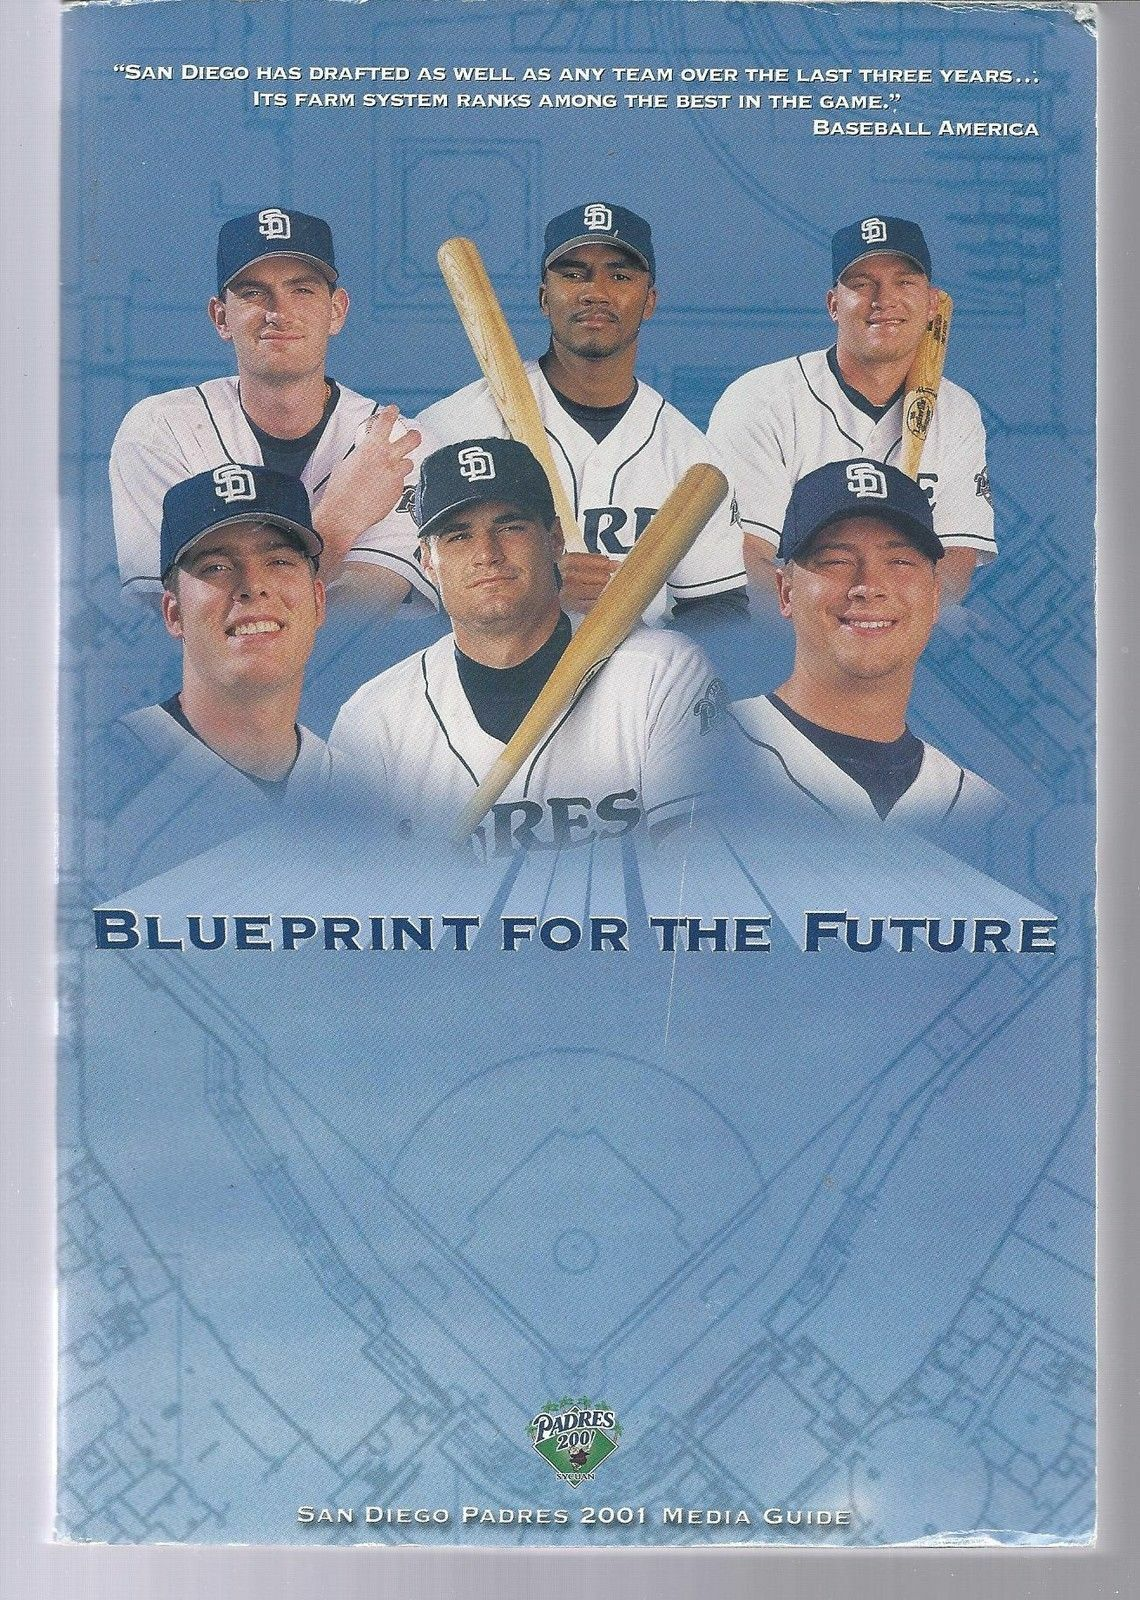 2001 San Diego Padres Baseball MLB Media Guide - Annual Player Information